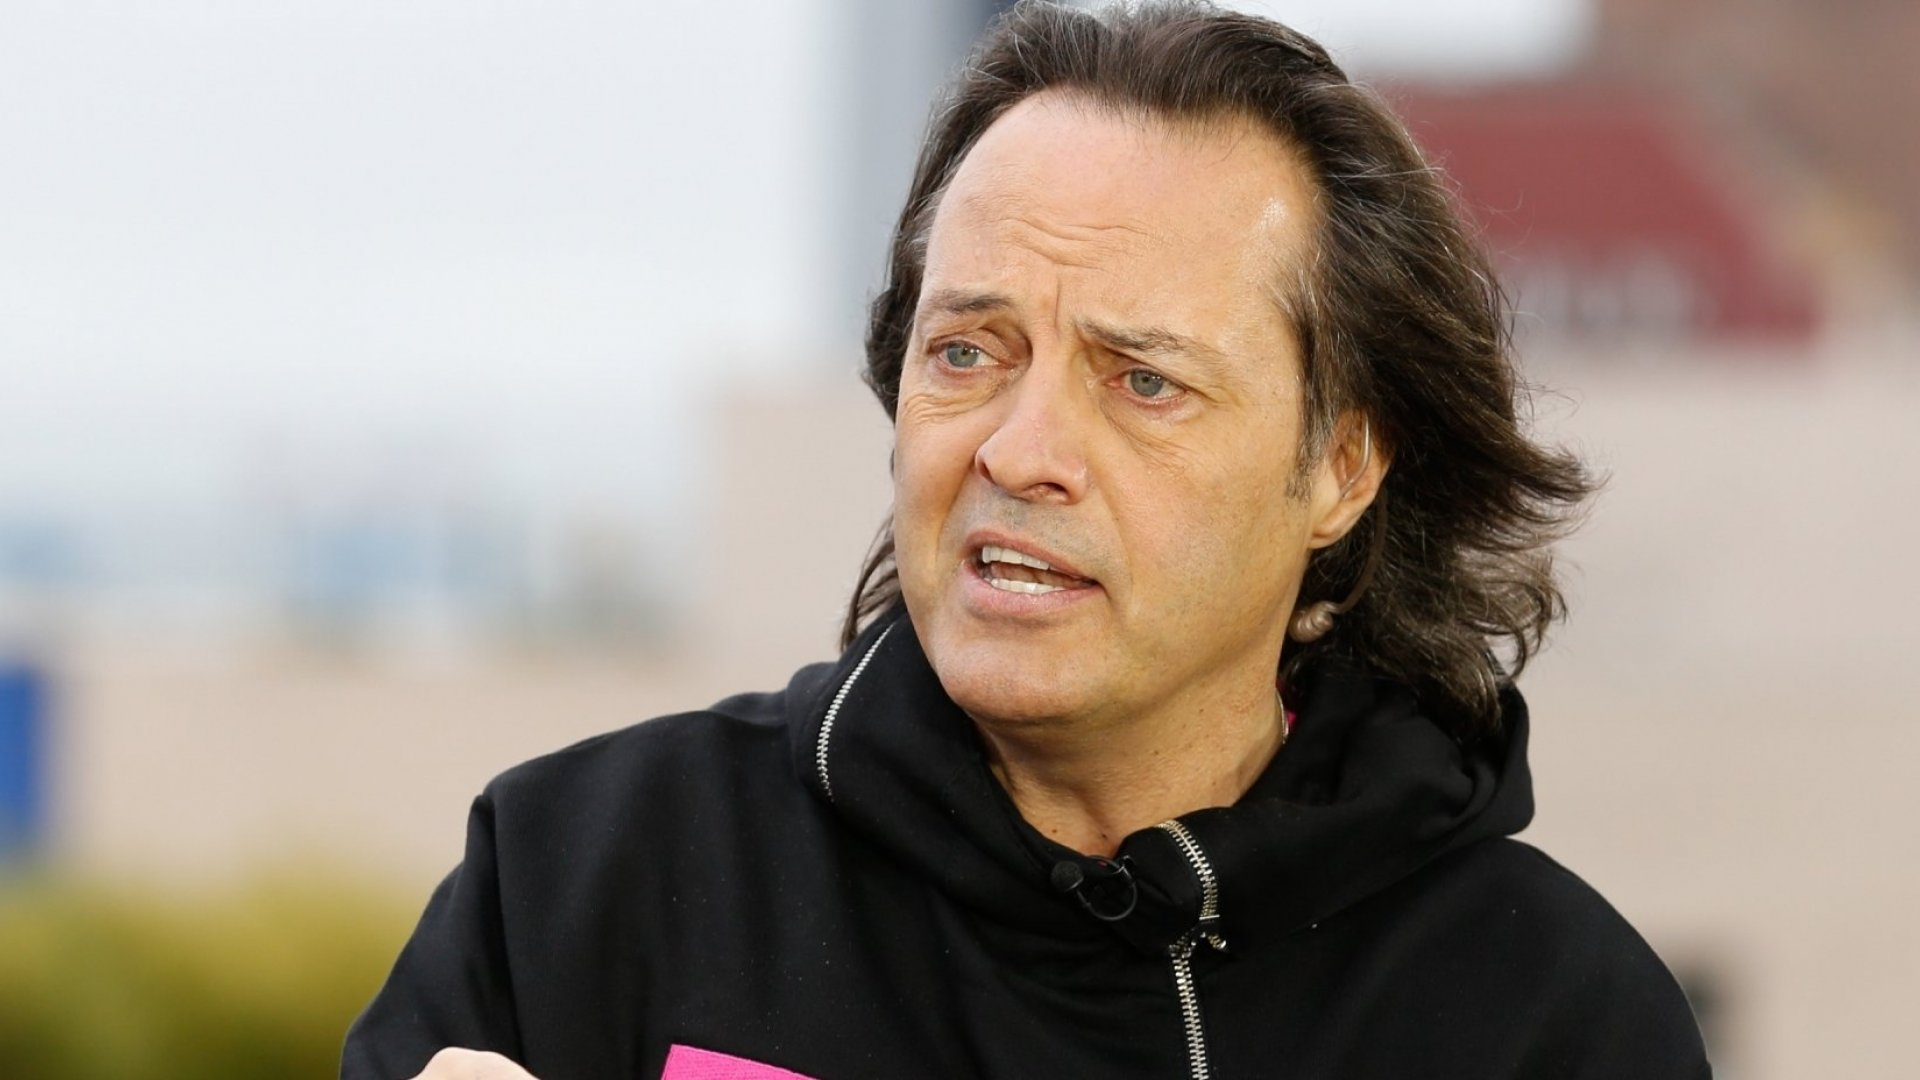 T-Mobile CEO John Legere will be the CEO of the merged company. Will he cut his hair?